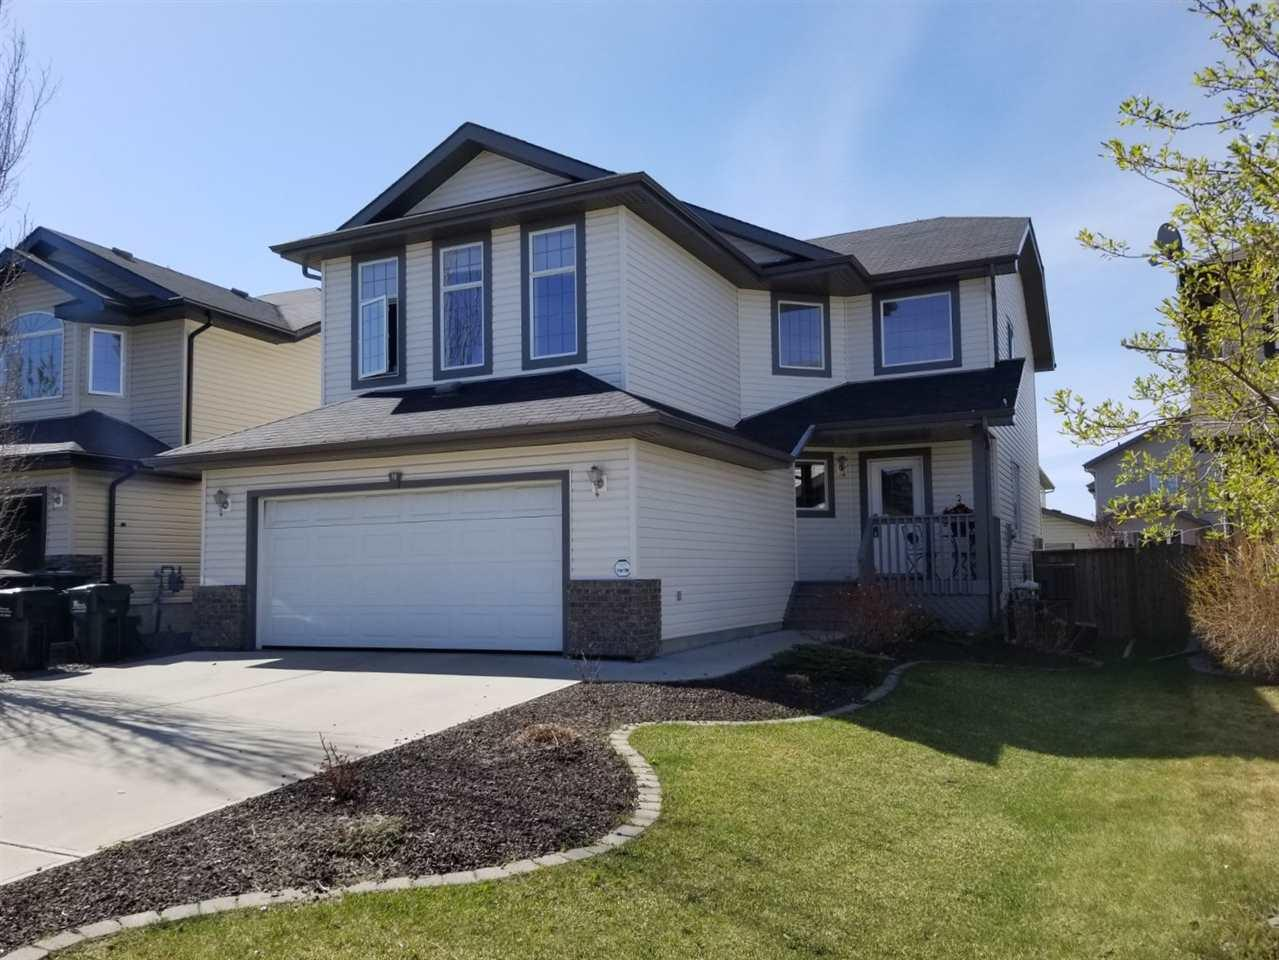 Removed: 10 Dorian Way, Sherwood Park, AB - Removed on 2019-05-23 06:00:20